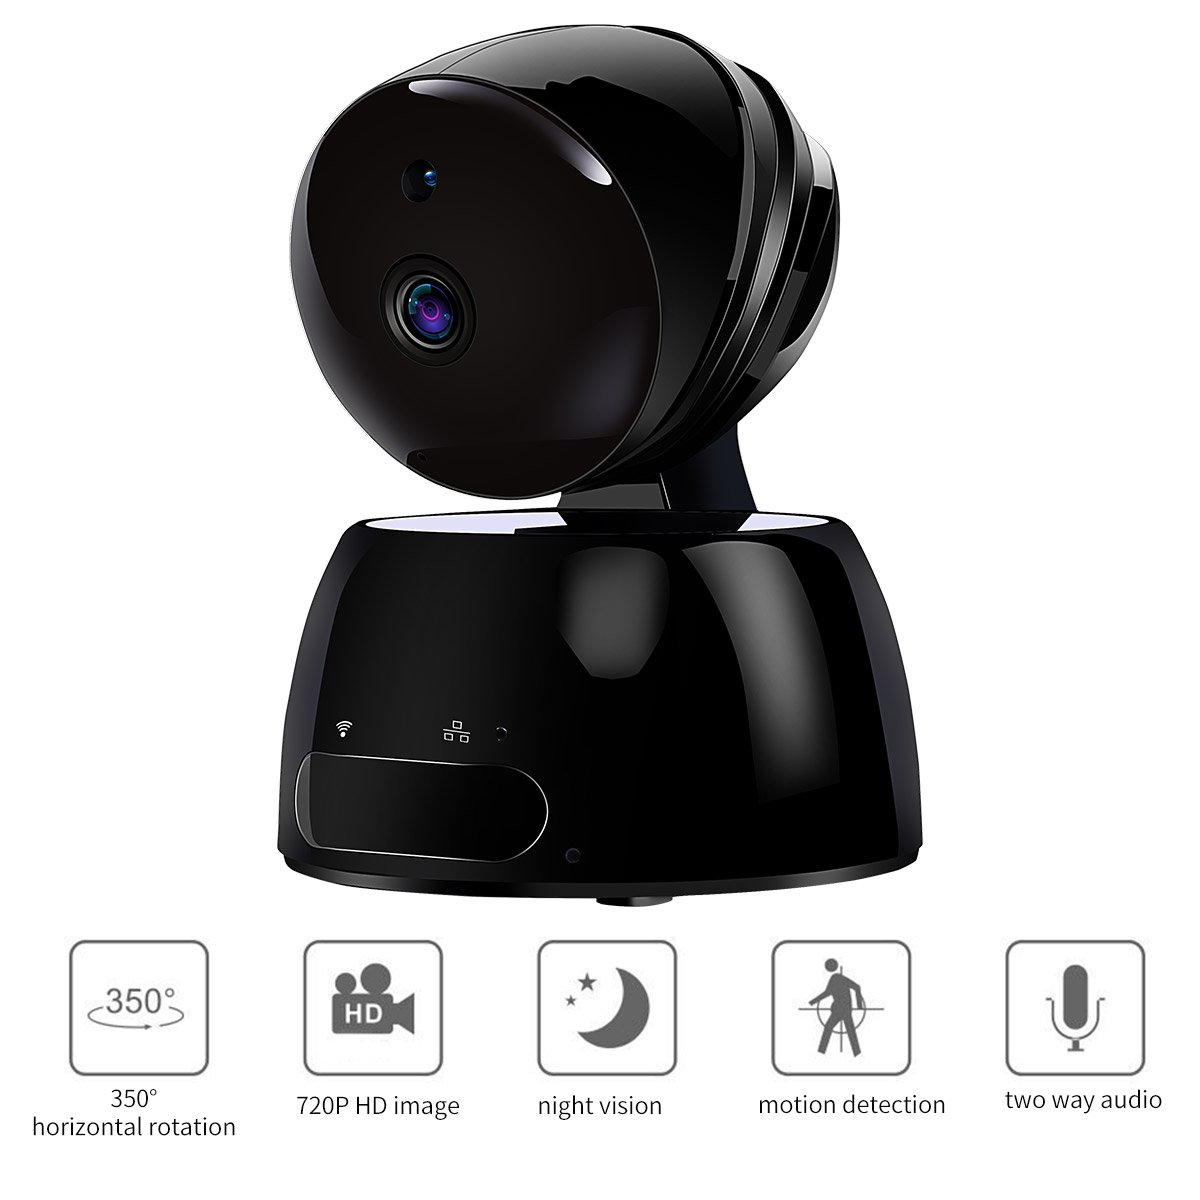 Wireless IP Camera, Bkayp 720P HD WiFi Cam Night Vision Home Security Camera Baby Pet Monitor Security Surveillance System P2P Pan Tilt Remote, Two-Way Audio Motion Detection Black